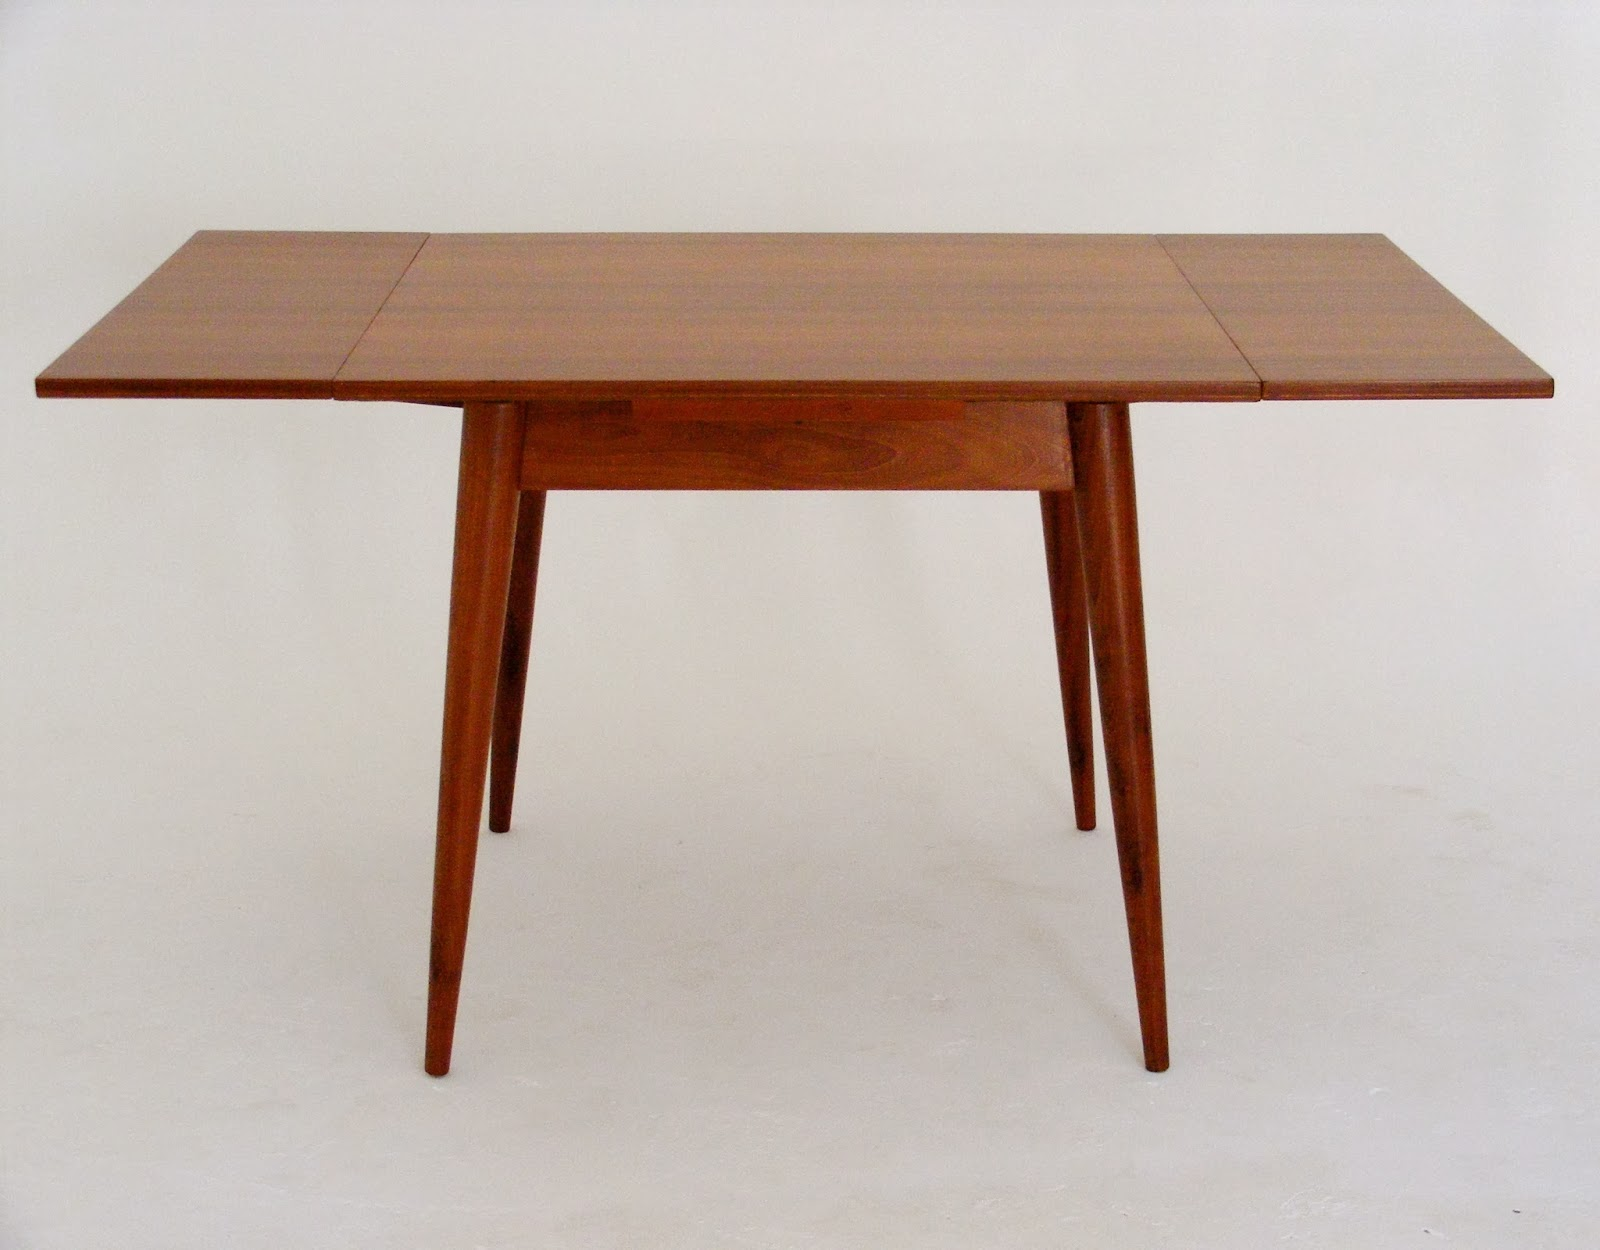 Vamp furniture new vintage furniture at vamp 21 - Square to rectangle dining table ...